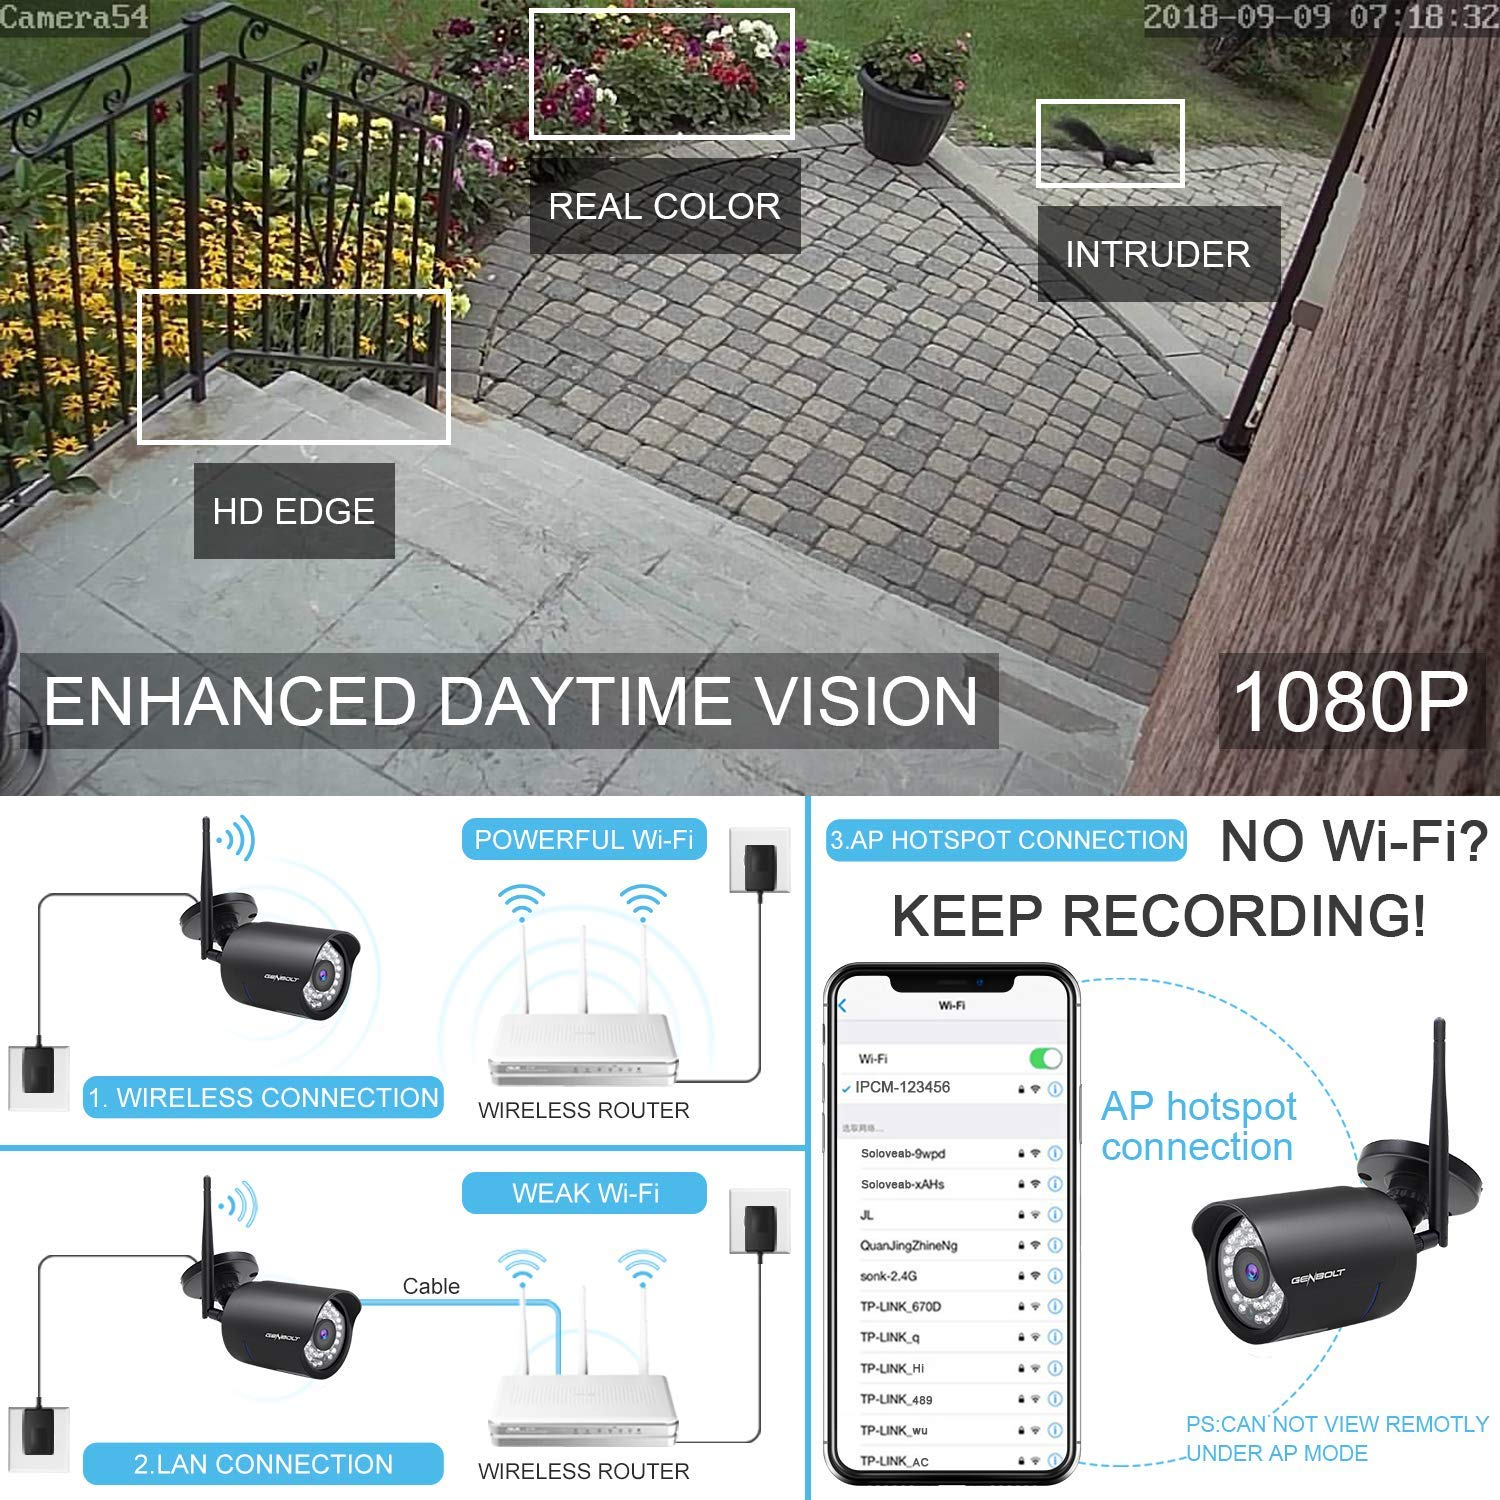 1080P Wireless WiFi Security Camera Outdoor - GENBOLT IP66 Waterproof IP  Bullet Camera for Home Security Surveillance, Motion Detection Night Vision